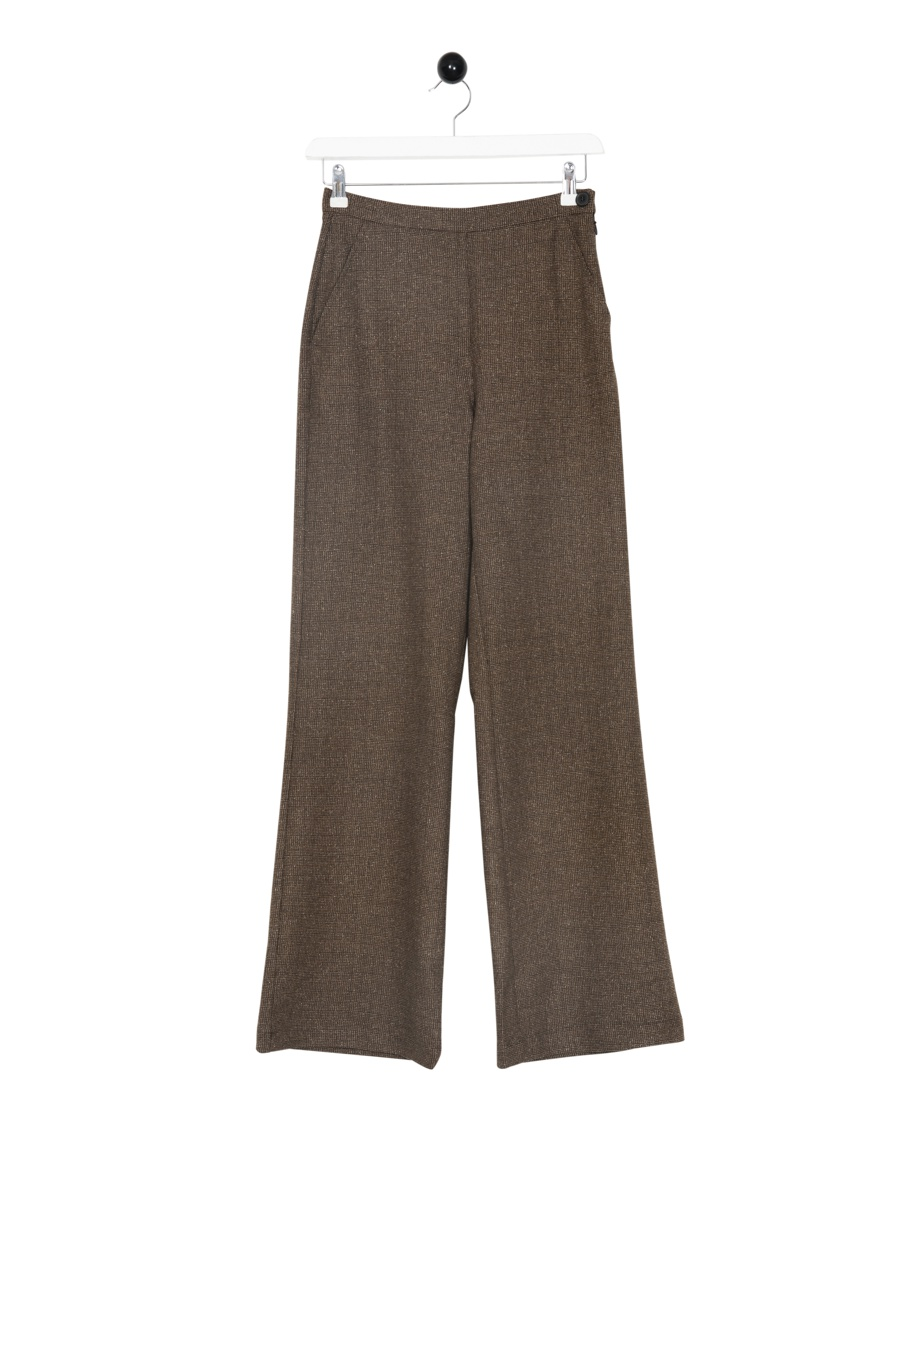 Return Grevlunda Trousers W